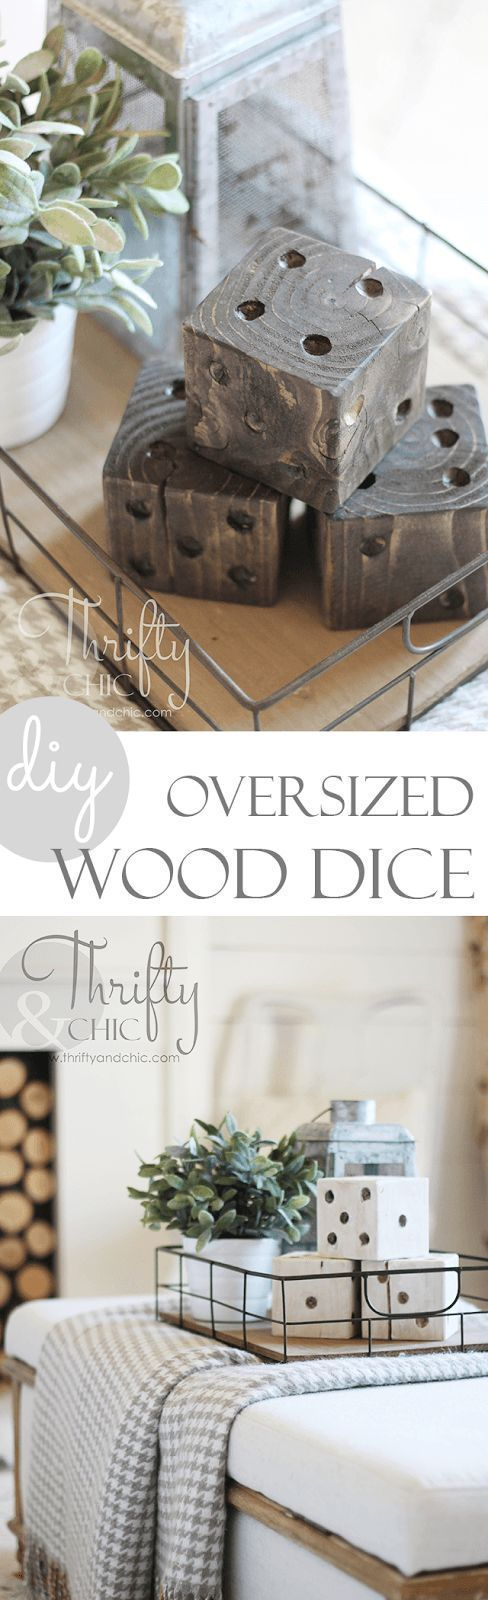 DIY oversized wood dice | 15 Easy DIY Reclaimed Wood Projects